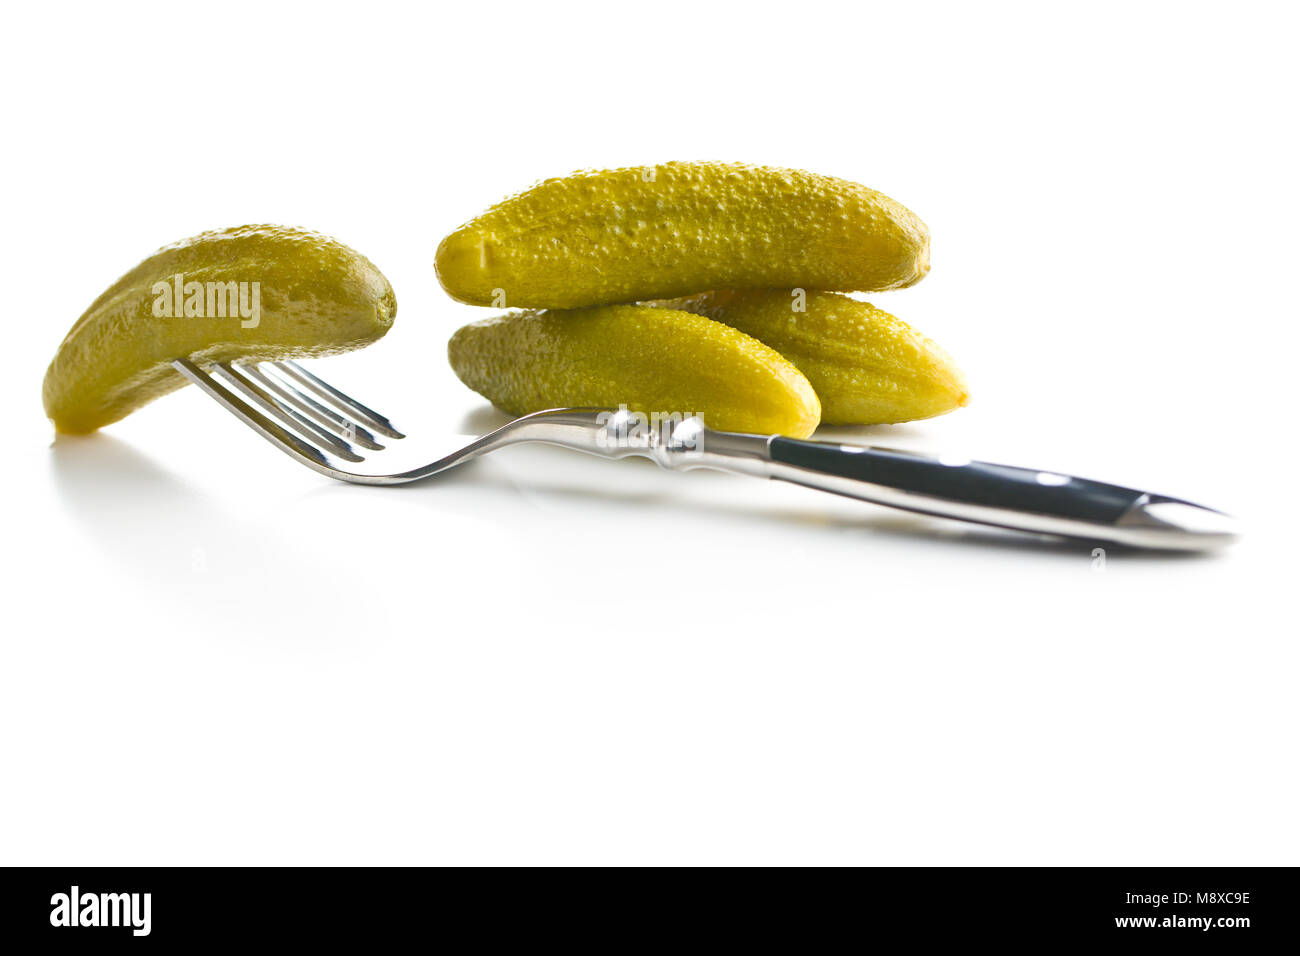 Preserved cucumbers isolated on white background. Tasty pickles. - Stock Image